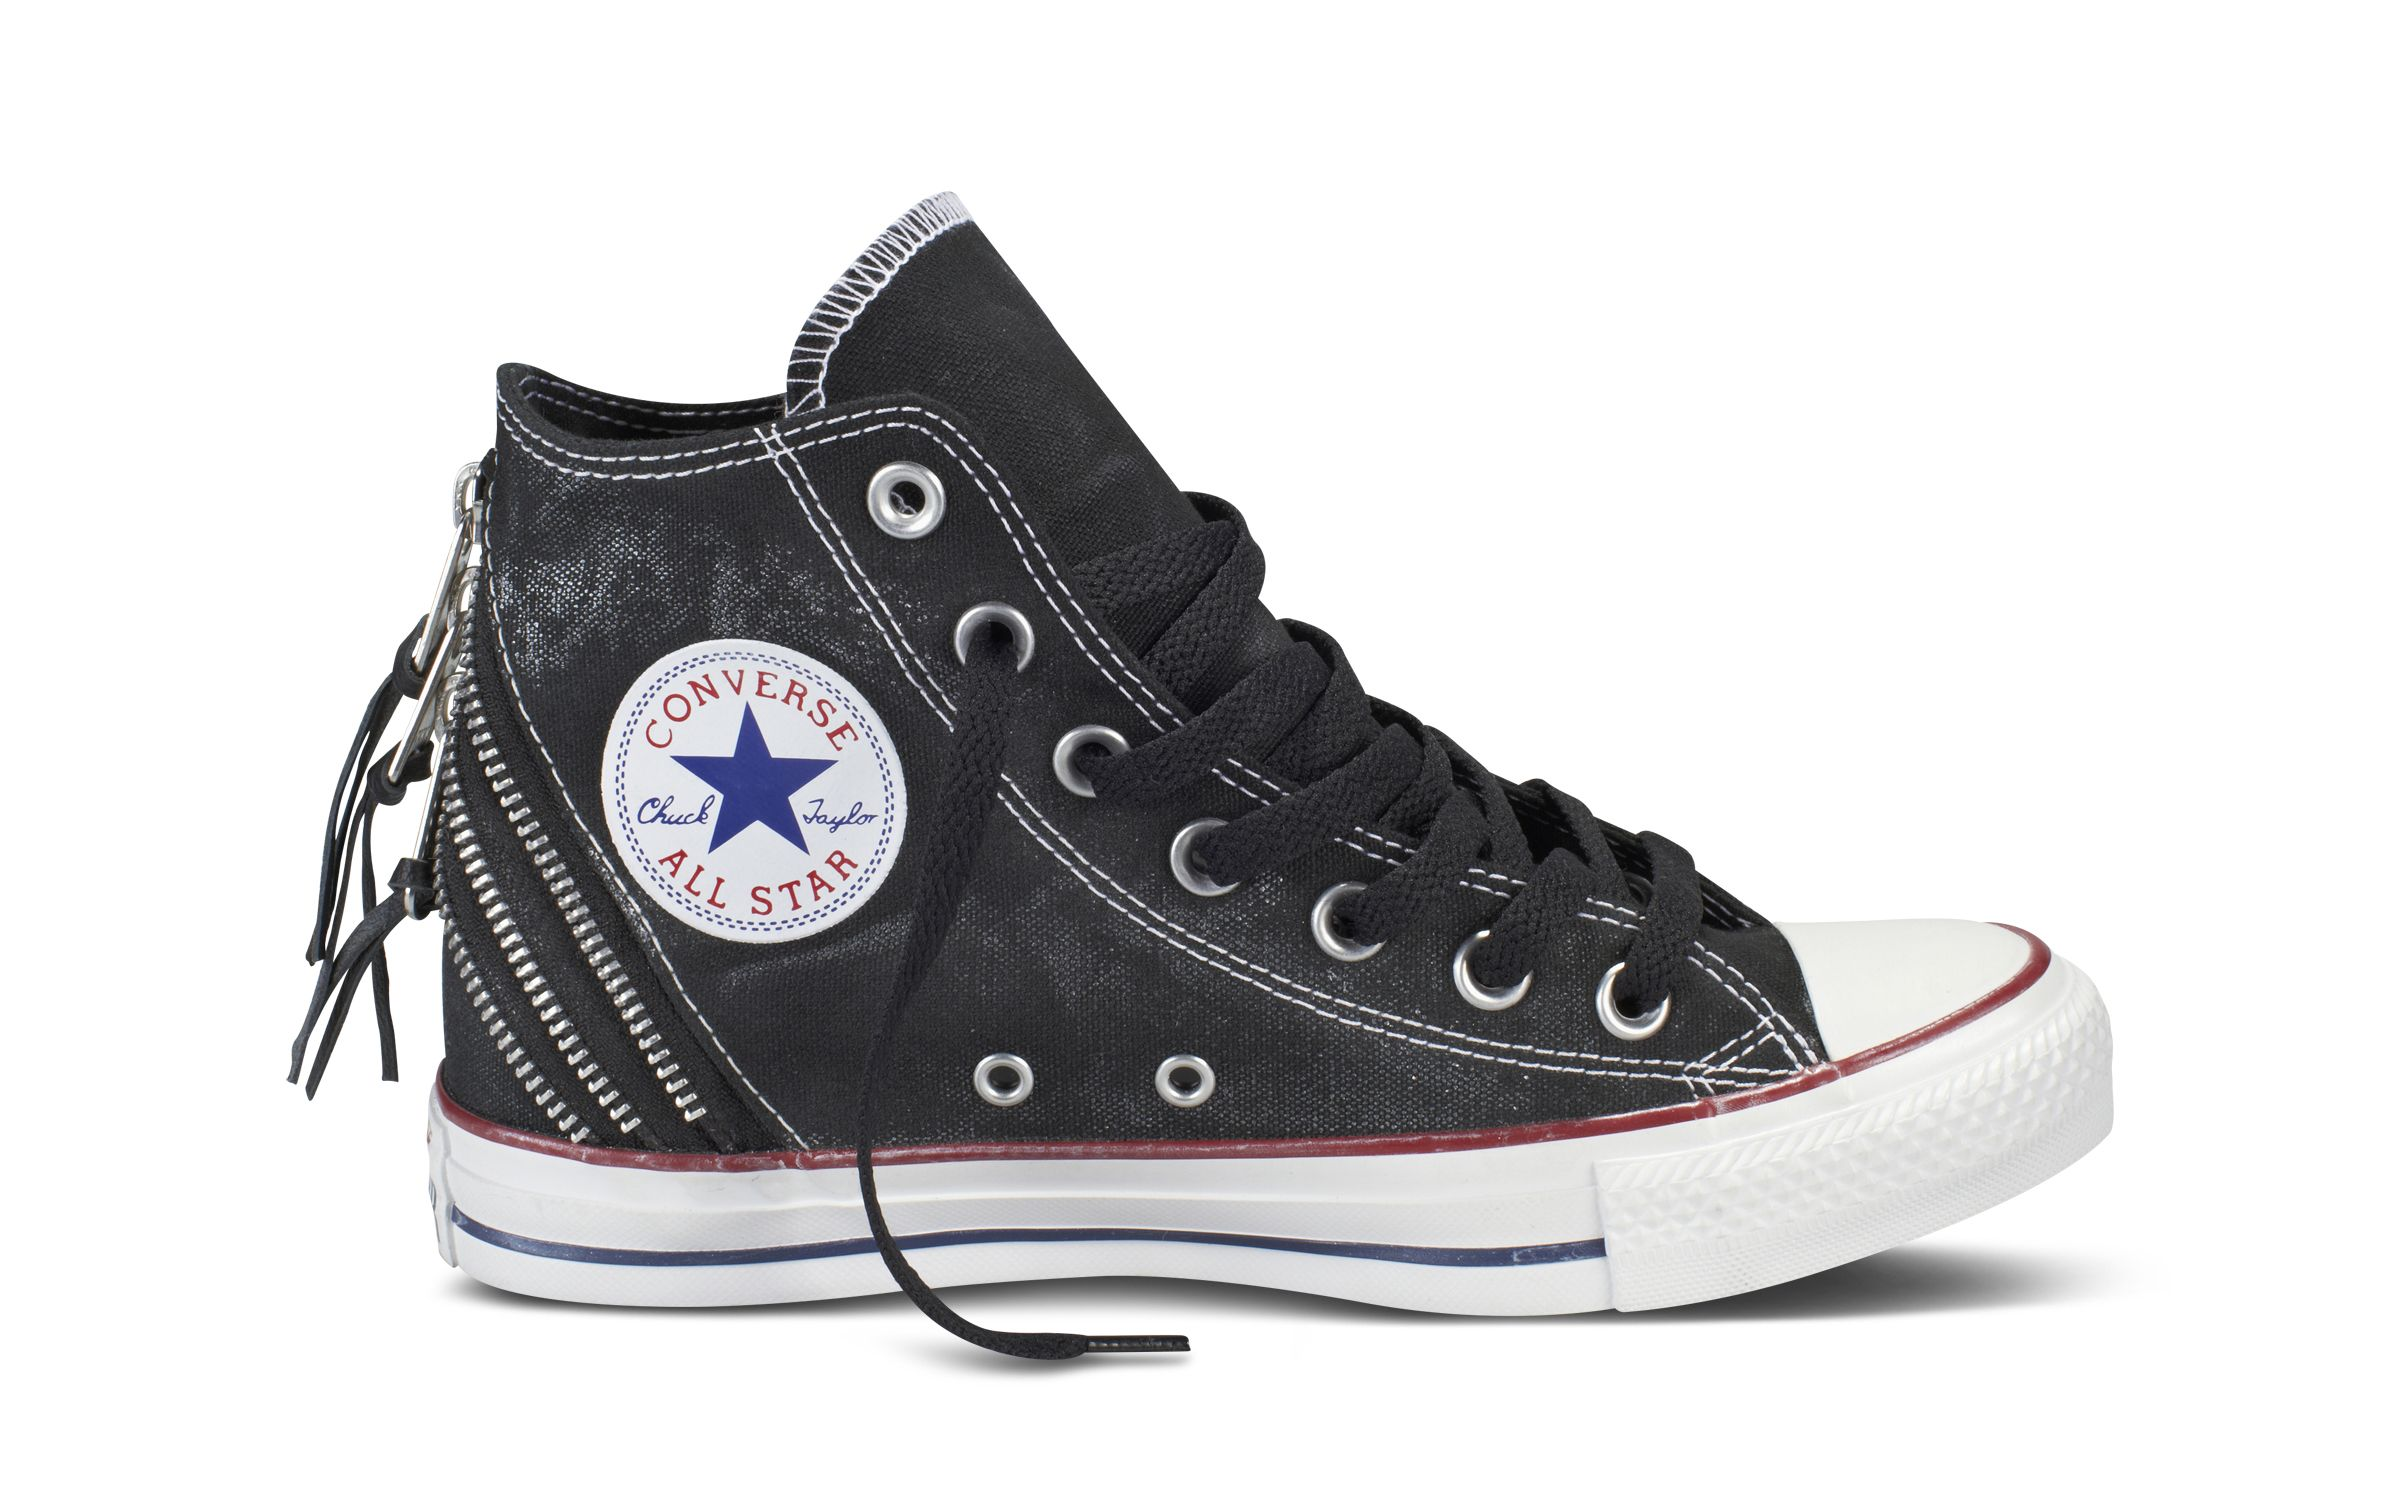 Pin by Alexamora on {Shoes} Sneakers fashion, Converse